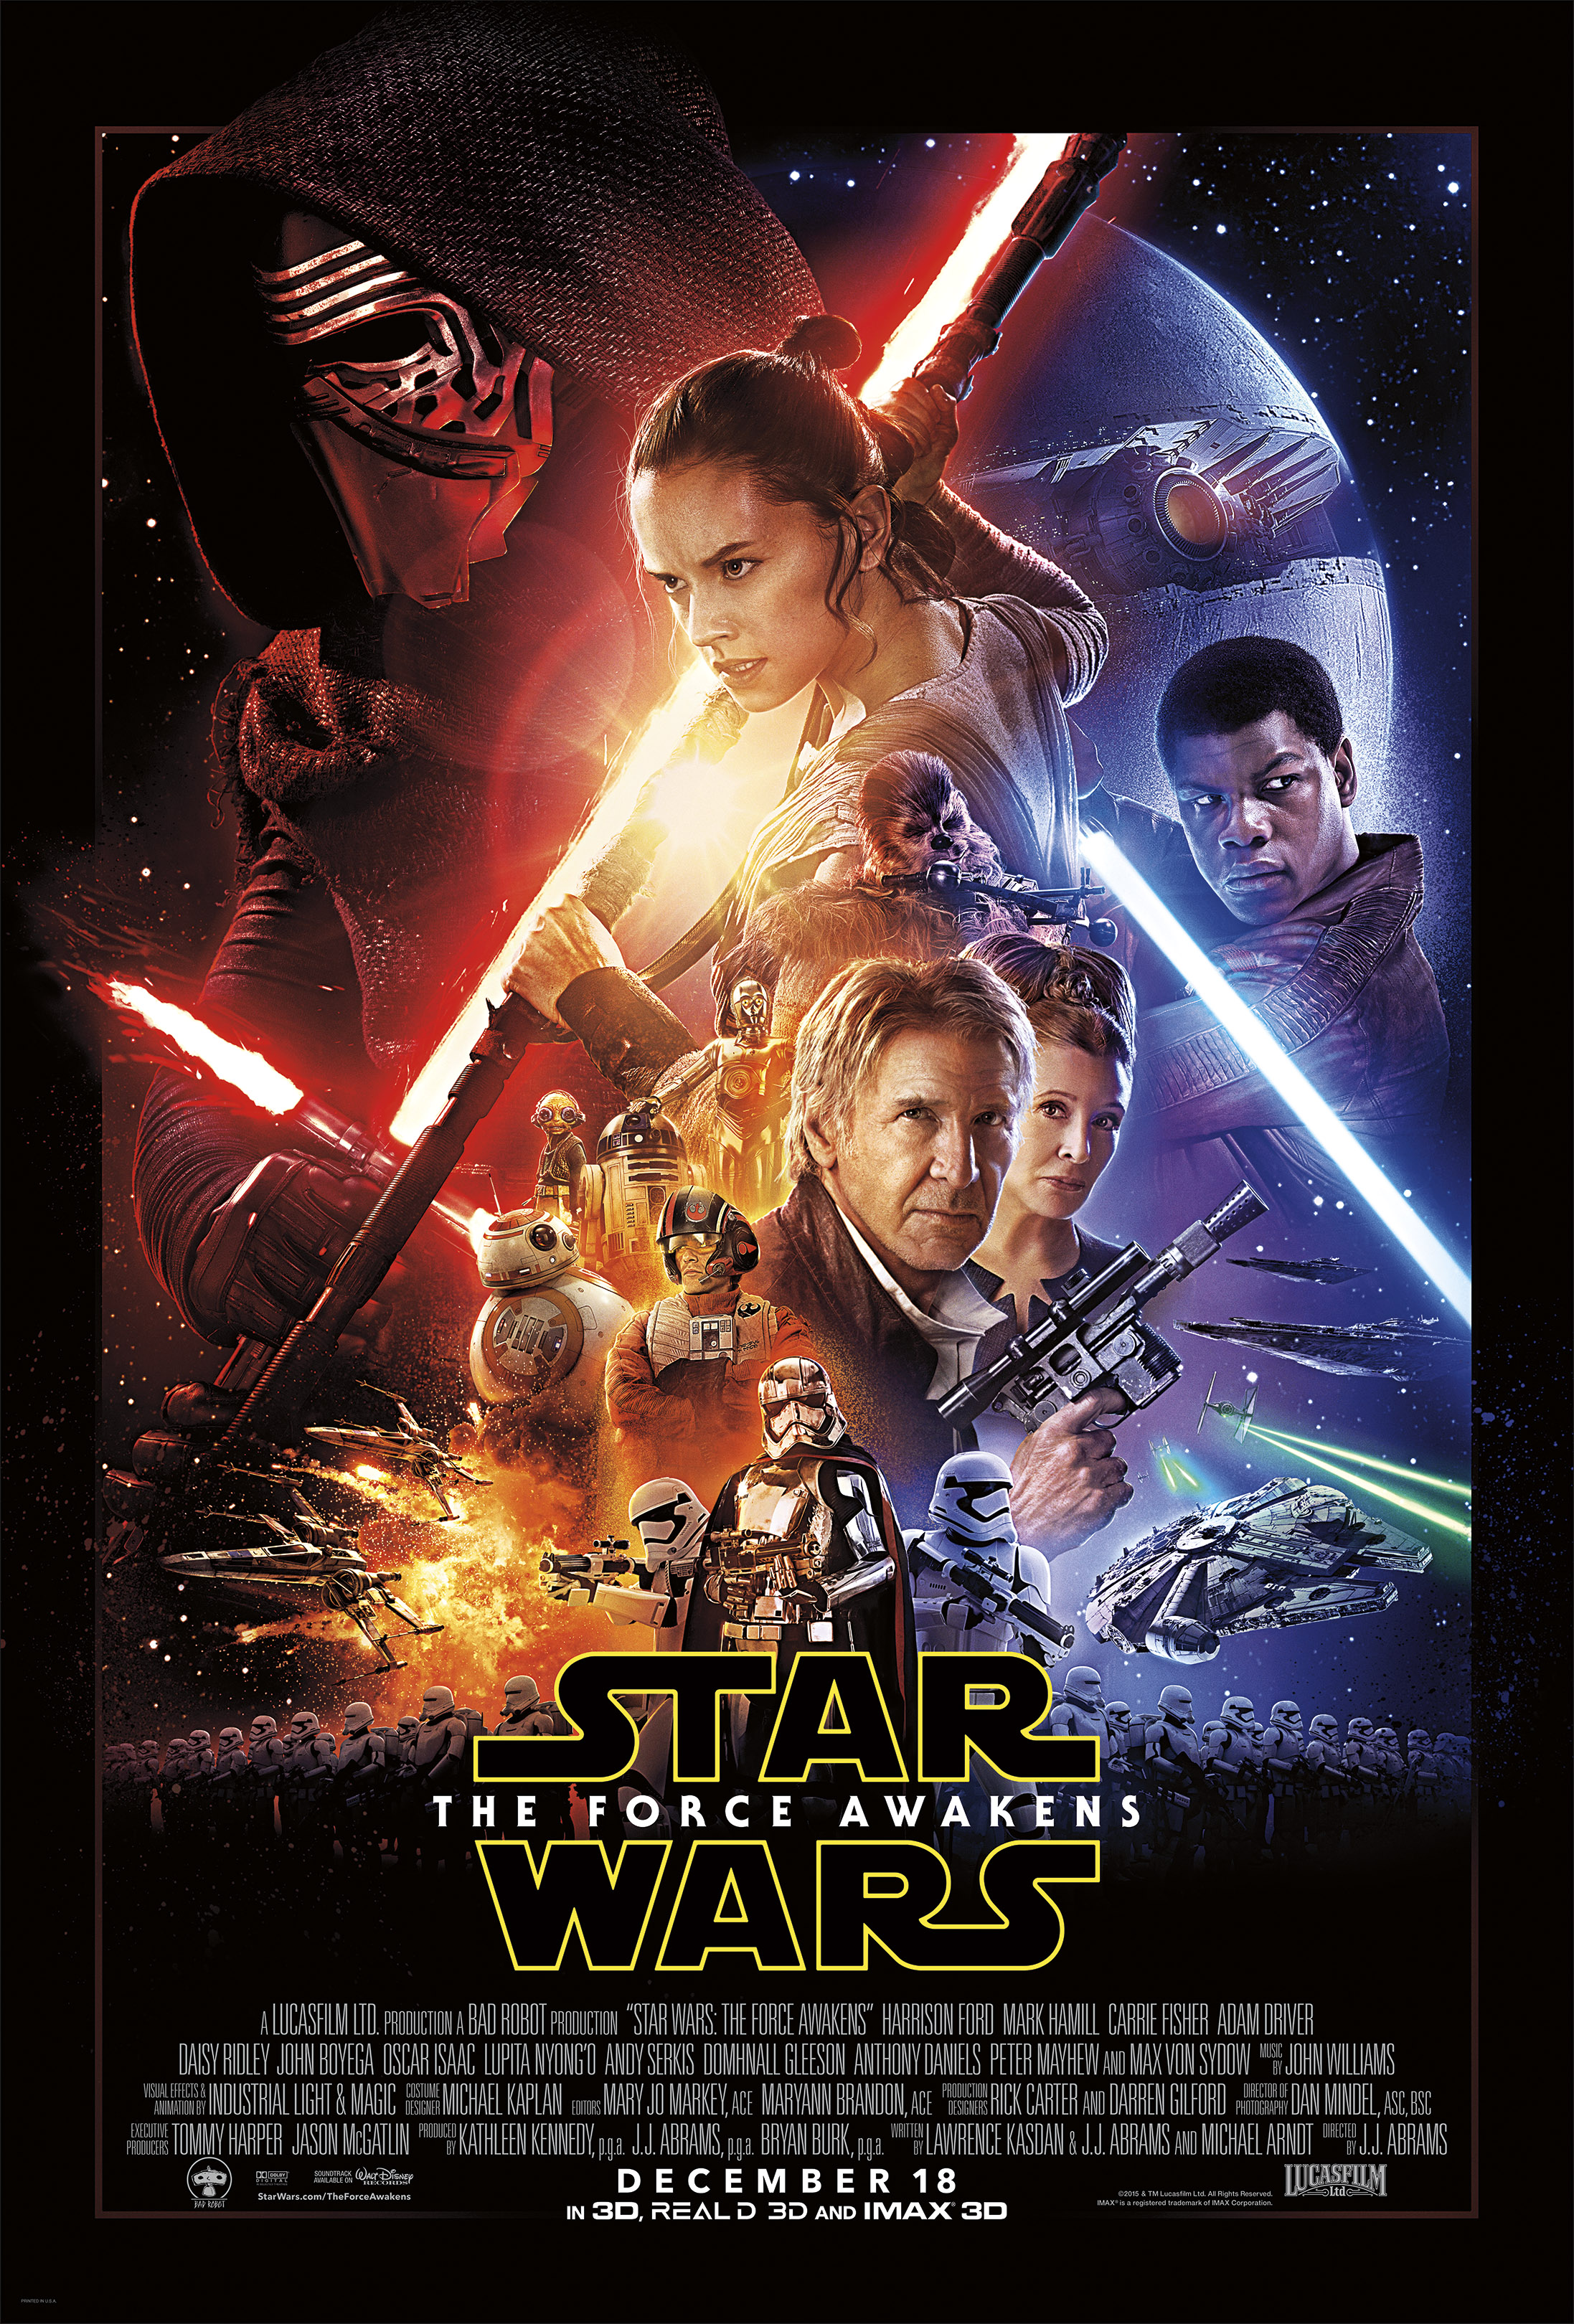 Star Wars The Force Awakens 2015 Hindi Dubbed